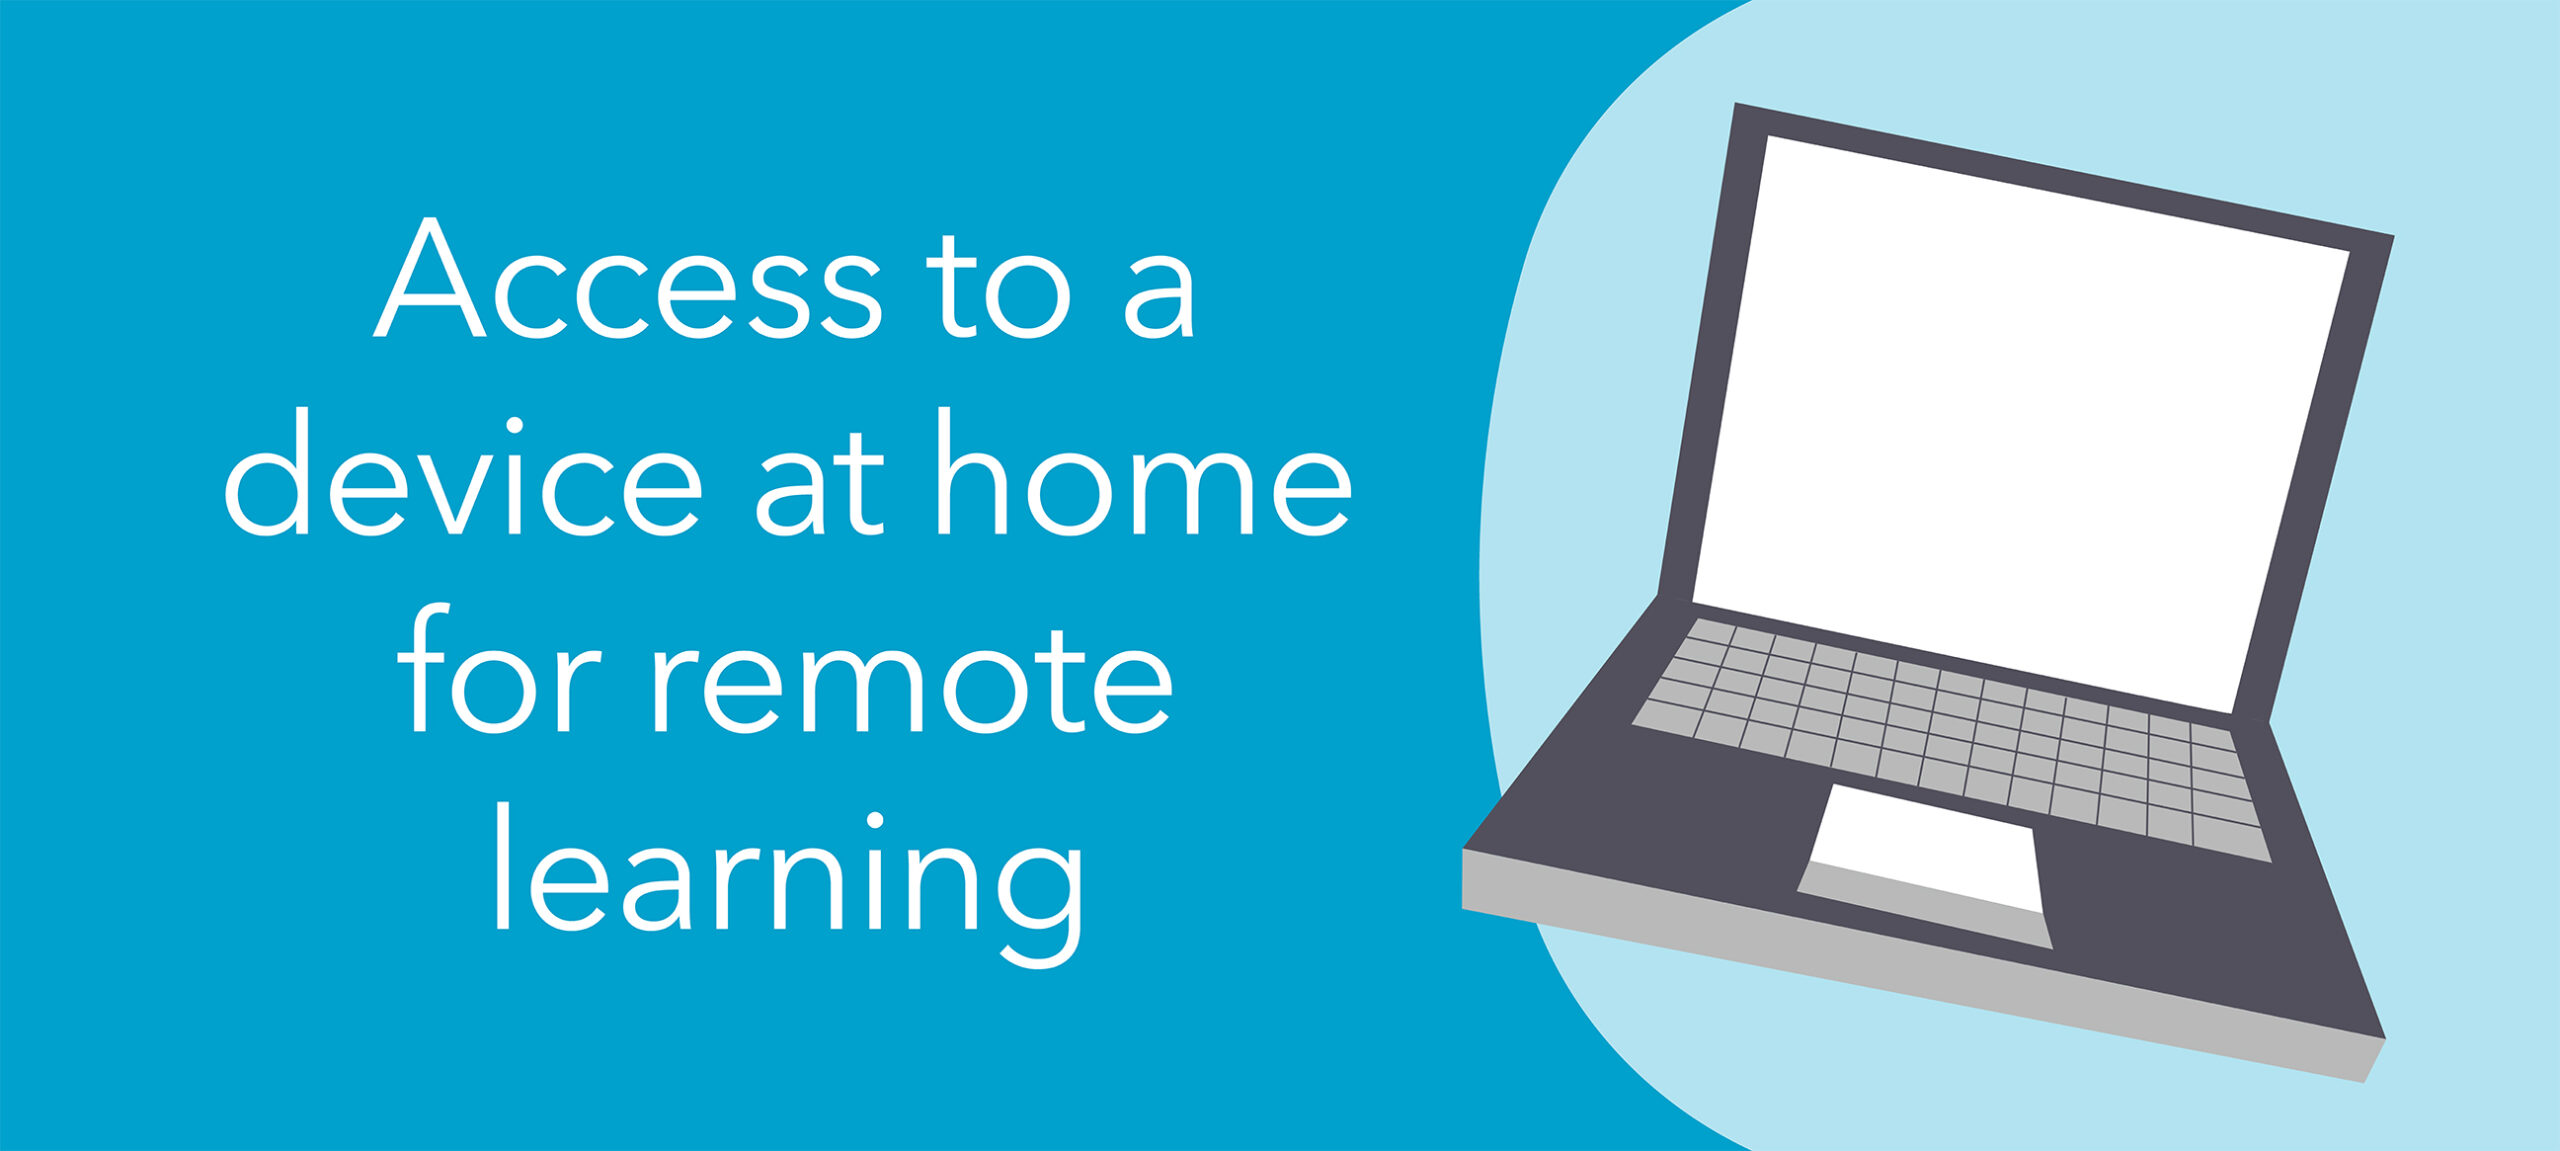 Access to a device at home for remote learning